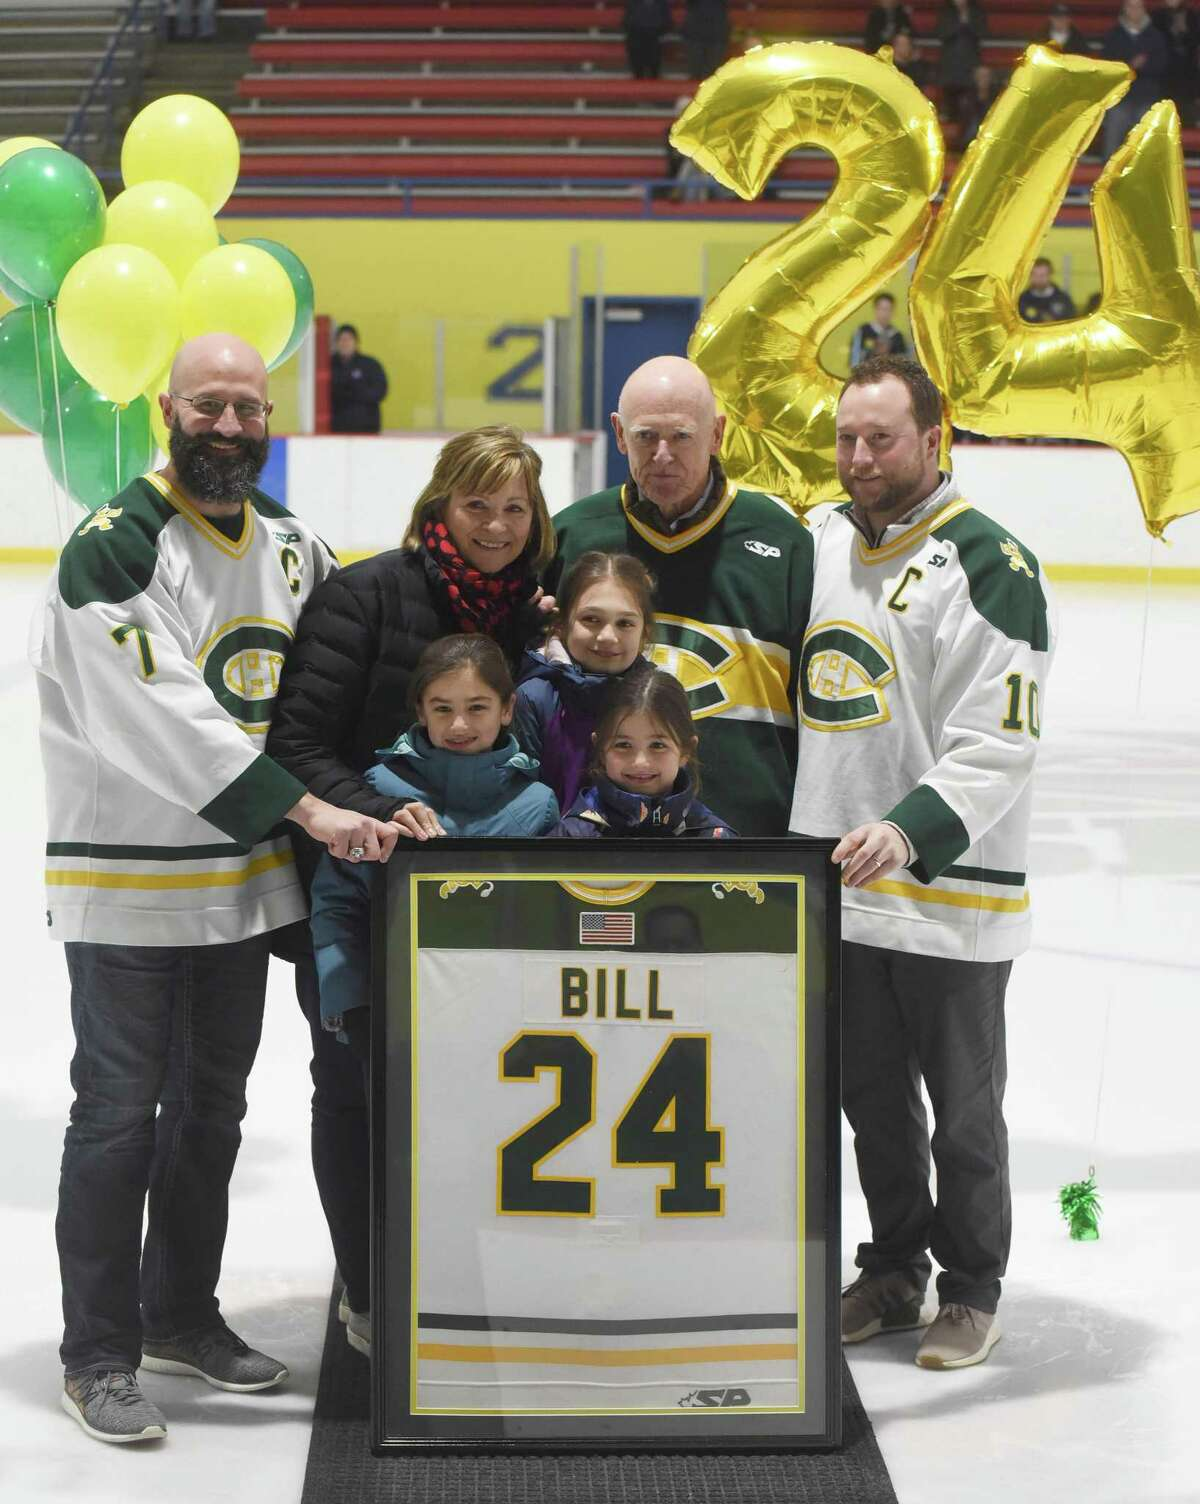 Former Trinity Catholic ice hockey players John Scofield (7) and Jimmie Bruno (10) present Brian Bill's retired jersey No. 24 to his parents, Pat Parry and Dr. Michael Parry, and nieces Ryder, Emma, and Everest Kutney, during a ceremony at Terry Conners Rink on Monday, March 2, 2020. Bill, a 1997 graduate of TCHS and a Navy SEAL, died in Afghanistan on Aug. 6, 2011.